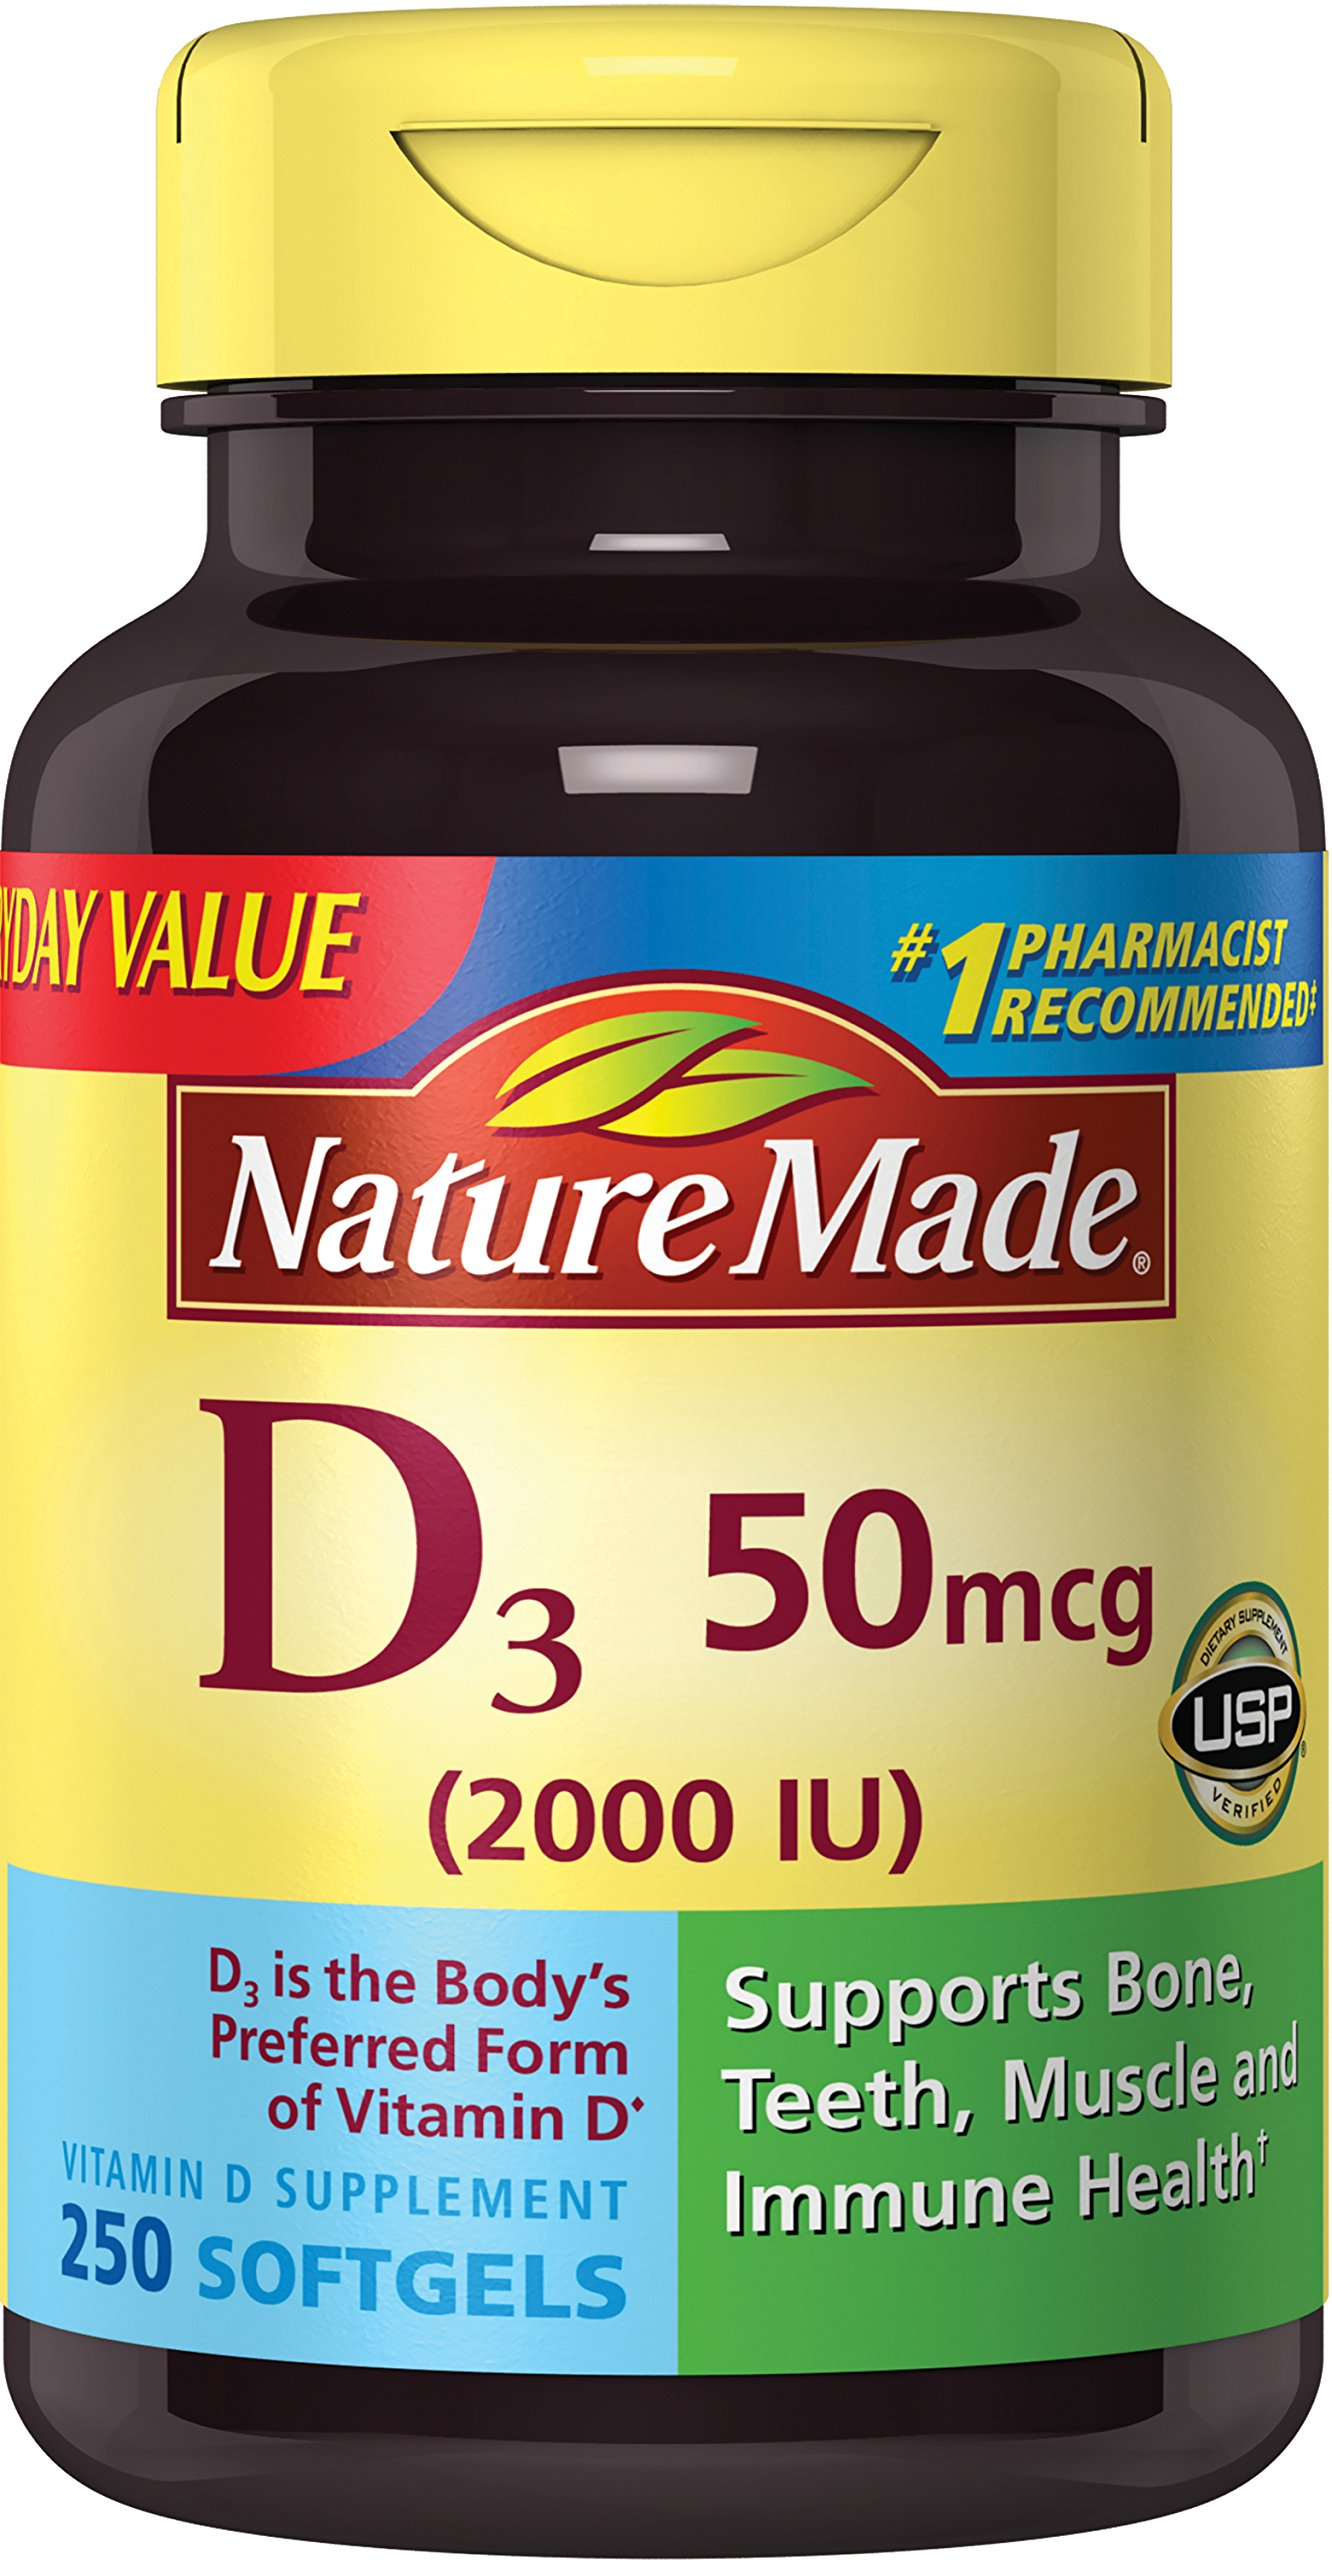 Nature Made Vitamin D3 2000 IU Softgels, 250 Ct by Nature Made (Image #1)